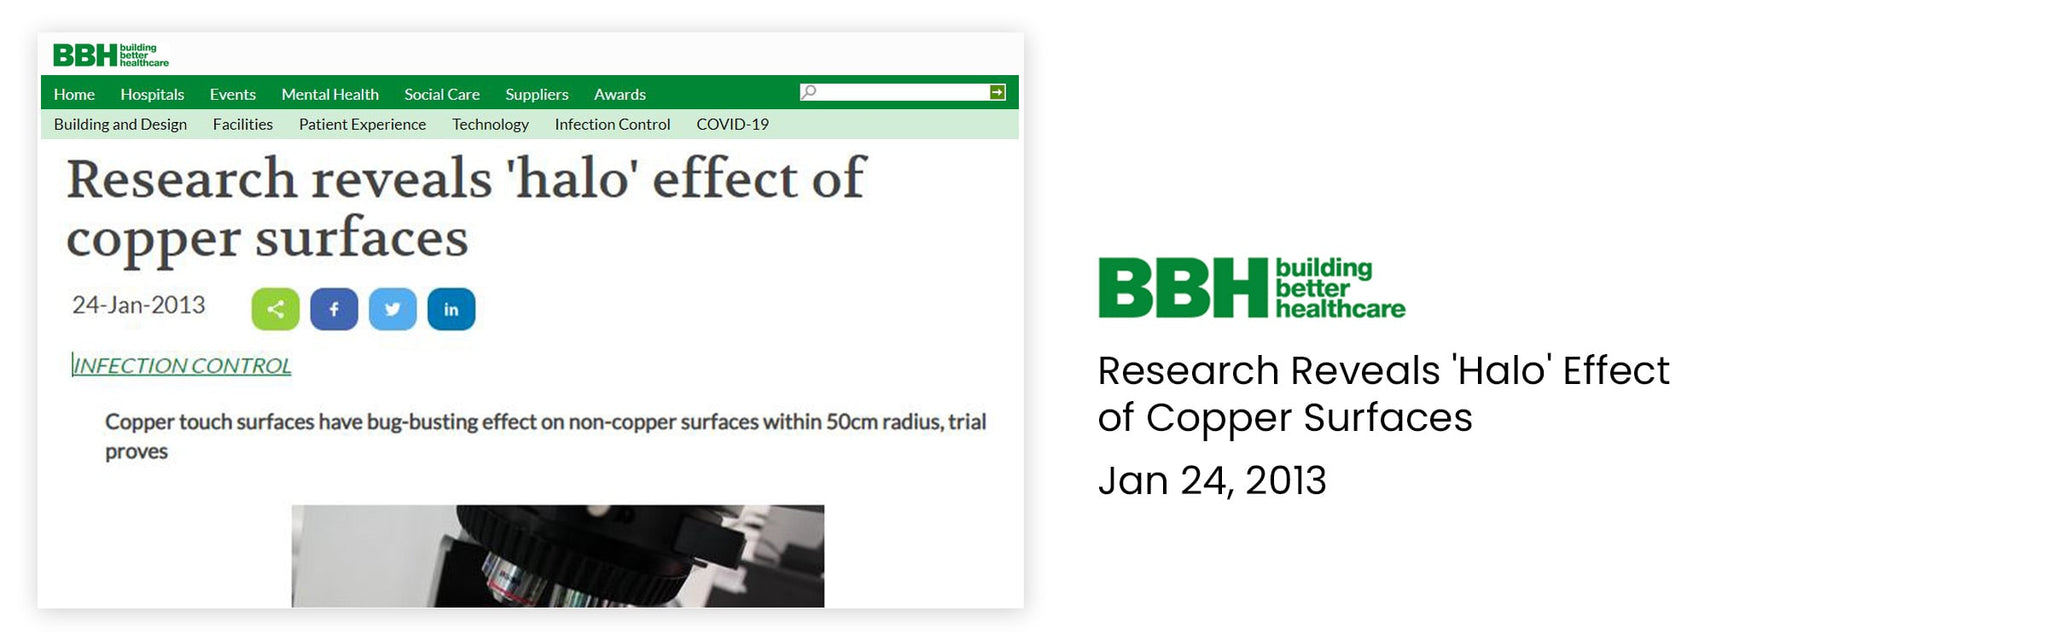 Research reveals 'halo' effect of copper surfaces_VForce Collection by New Designers Space